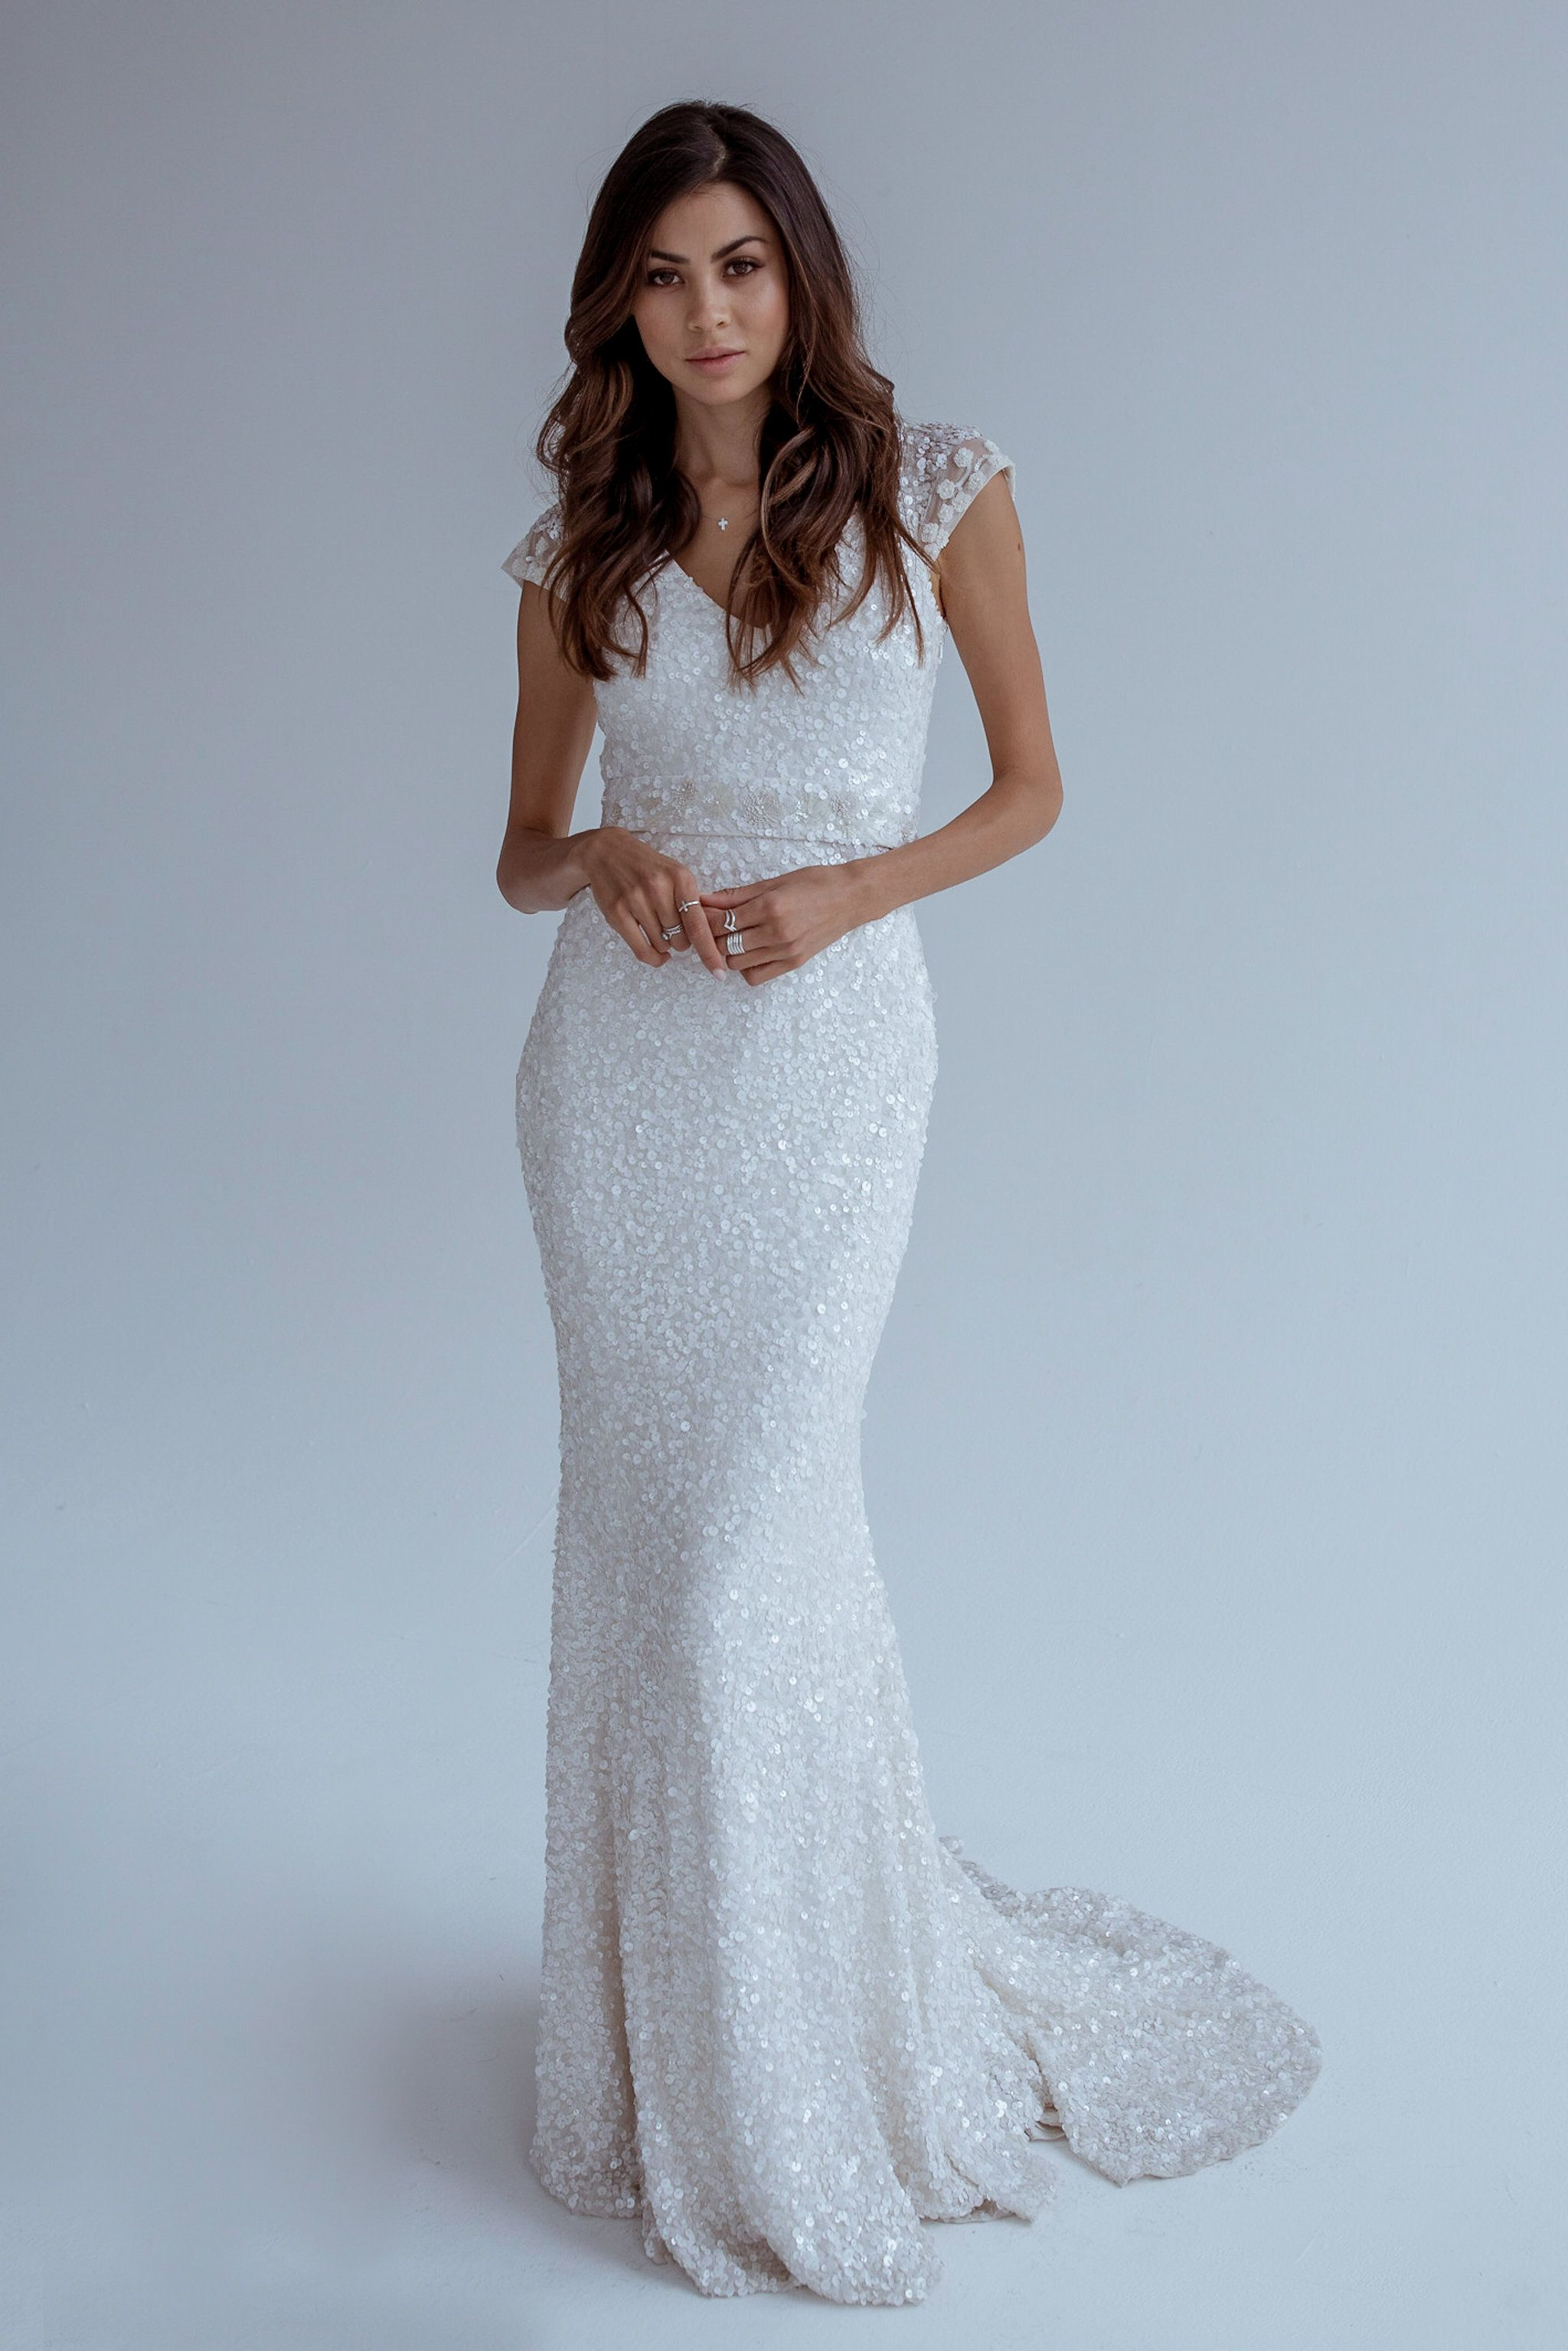 KAREN WILLIS HOMES // ONE & ONLY BRIDAL // The \'Caitlyn\' is a ...